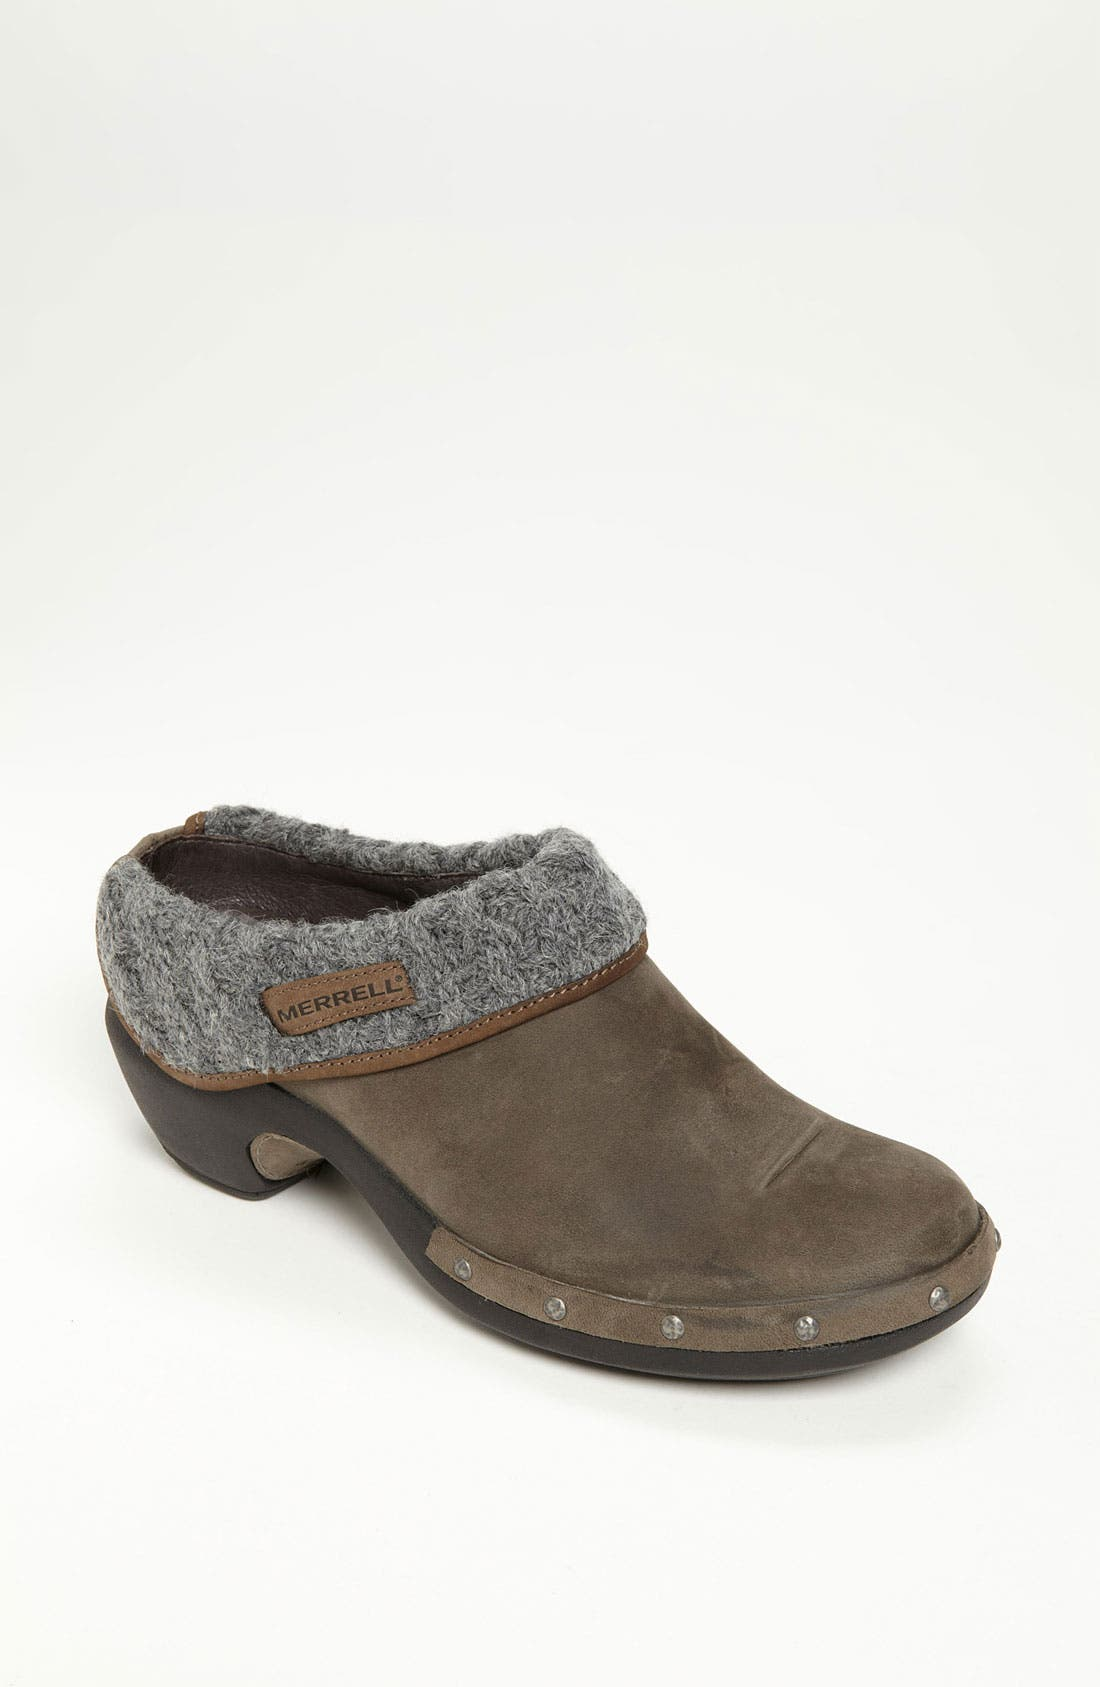 Main Image - Merrell 'Luxe Knit' Clog